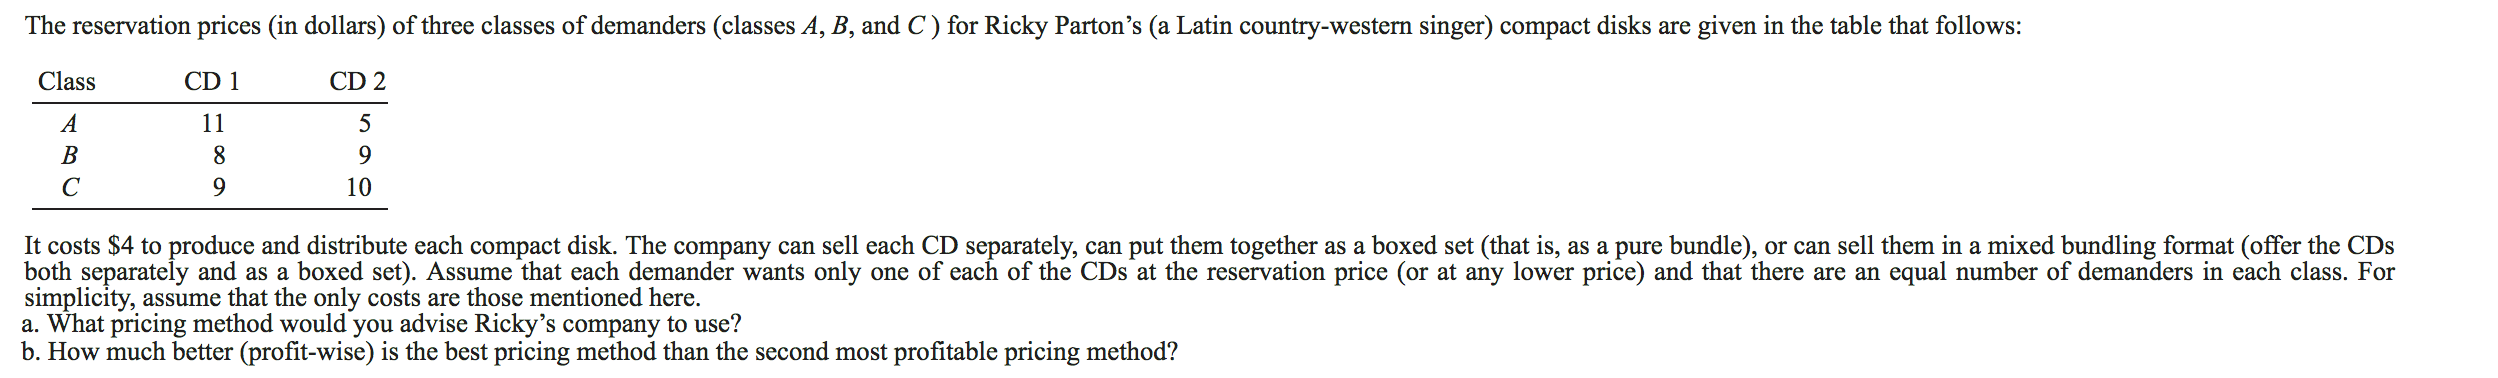 The reservation prices (in dollars) of three classes of demanders (classes A, B, and C) for Ricky Parton's (a Latin country-western singer) compact disks are given in the table that follows: Class CD 1 CD 2 А 11 5 В С 10 It costs $4 to produce and distribute each compact disk. The company can sell each CD separately, can put them together as a boxed set (that is, as a pure bundle), or can sell them in a mixed bundling format (offer the CDs both separately and as a boxed set). Assume that each demander wants only one of each of the CDs at the reservation price (or at any lower price) and that there are an equal number of demanders in each class. For simplicity, assume that the only costs are those mentioned here a. What pricing method would you advise Ricky's company to use? b. How much better (profit-wise) is the best pricing method than the second most profitable pricing method?